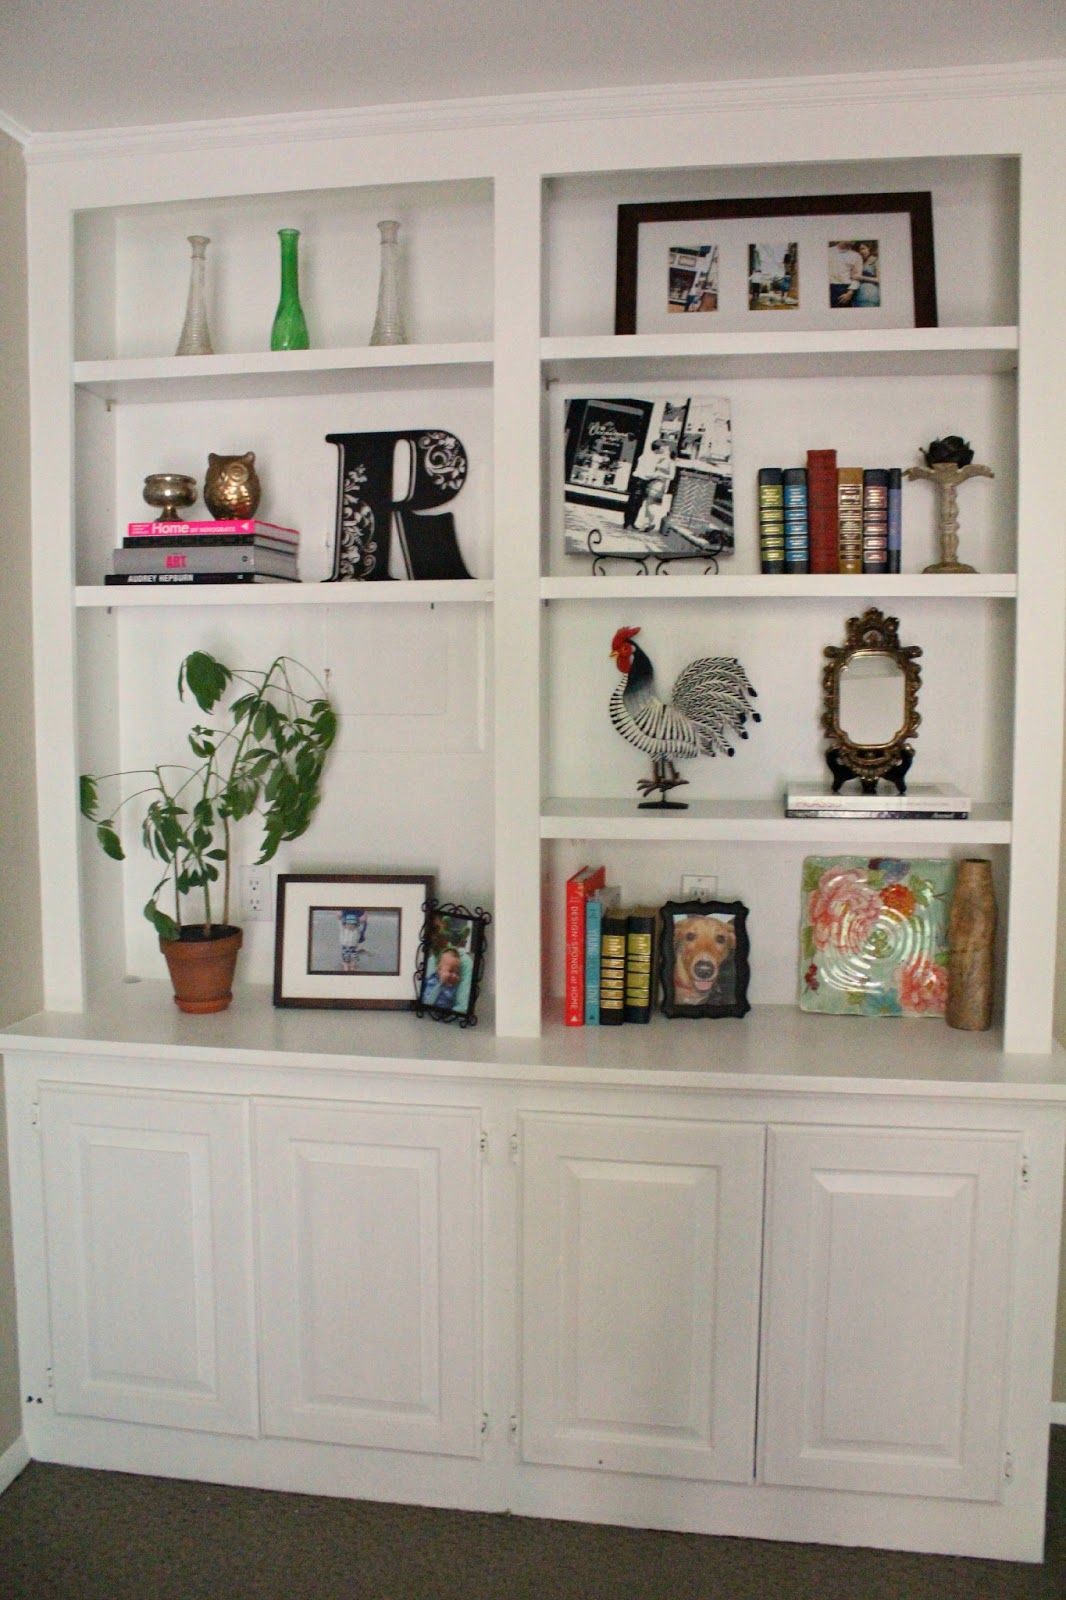 Bookshelf Decorating Ideas | Shelves & Storage | Decorating ...